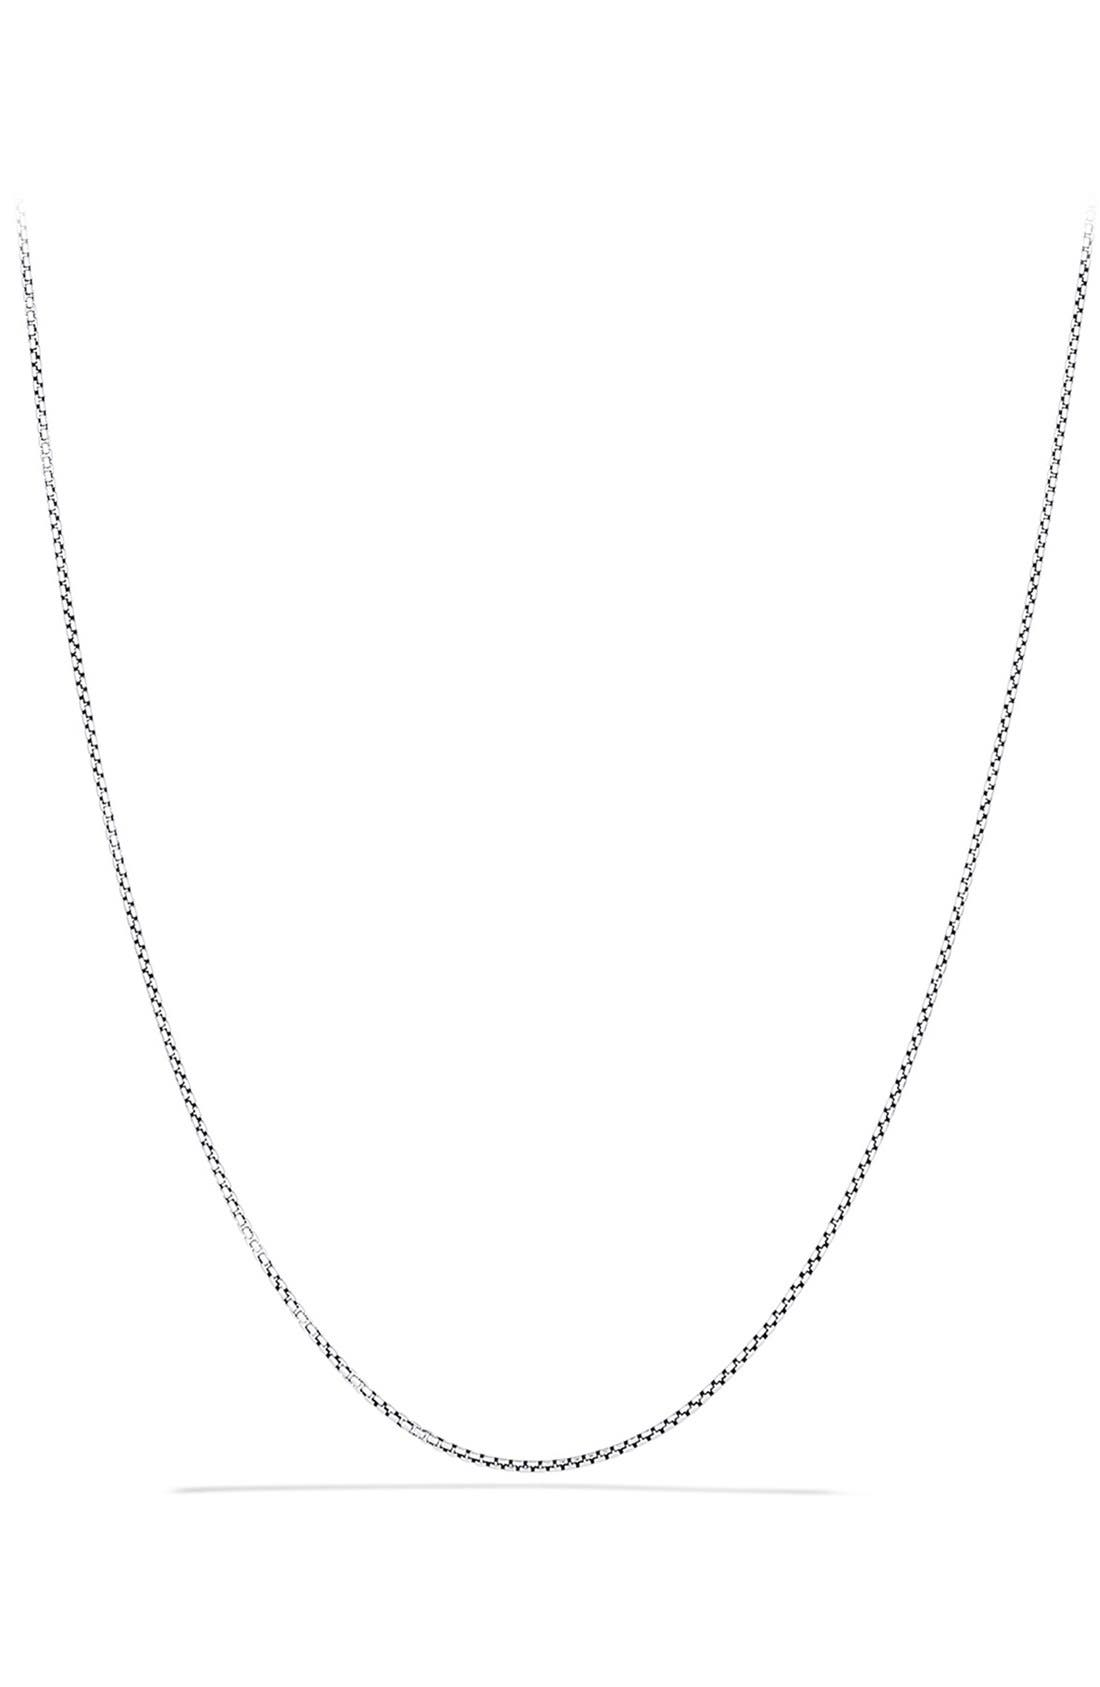 David Yurman 'Chain' Baby Box Chain Necklace